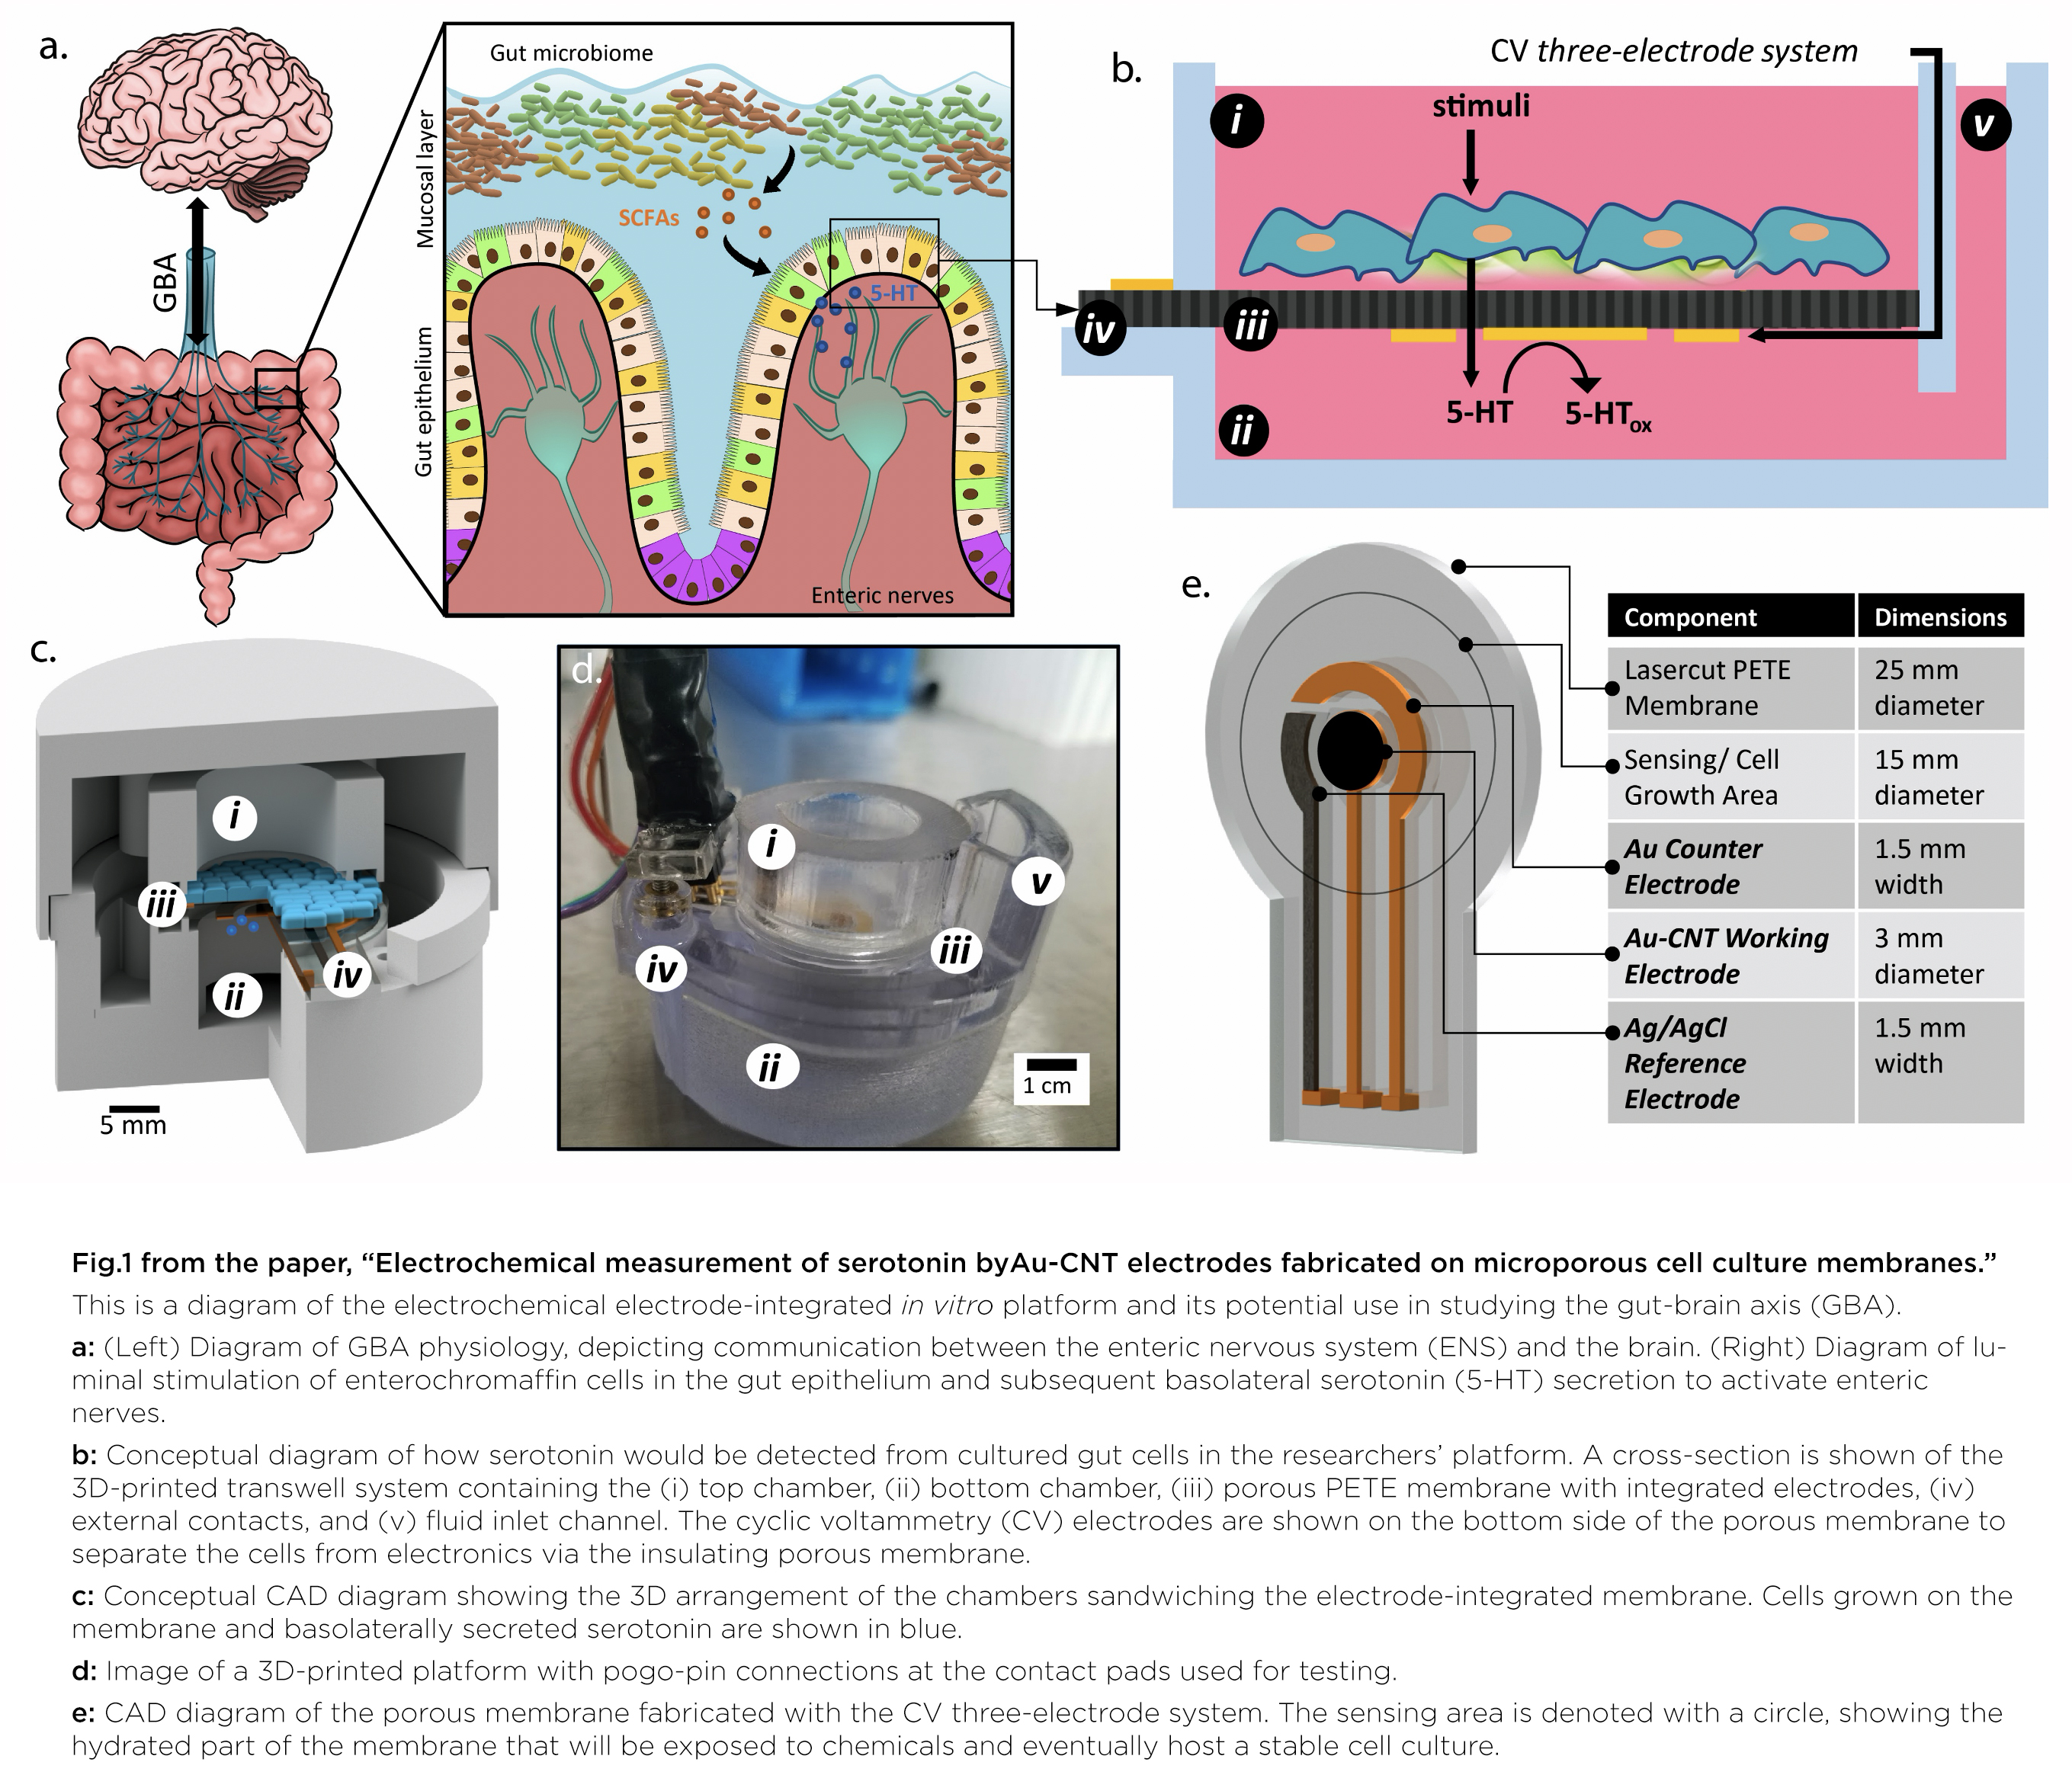 Diagram of the platform and its potential use in studying the gut-brain axis.